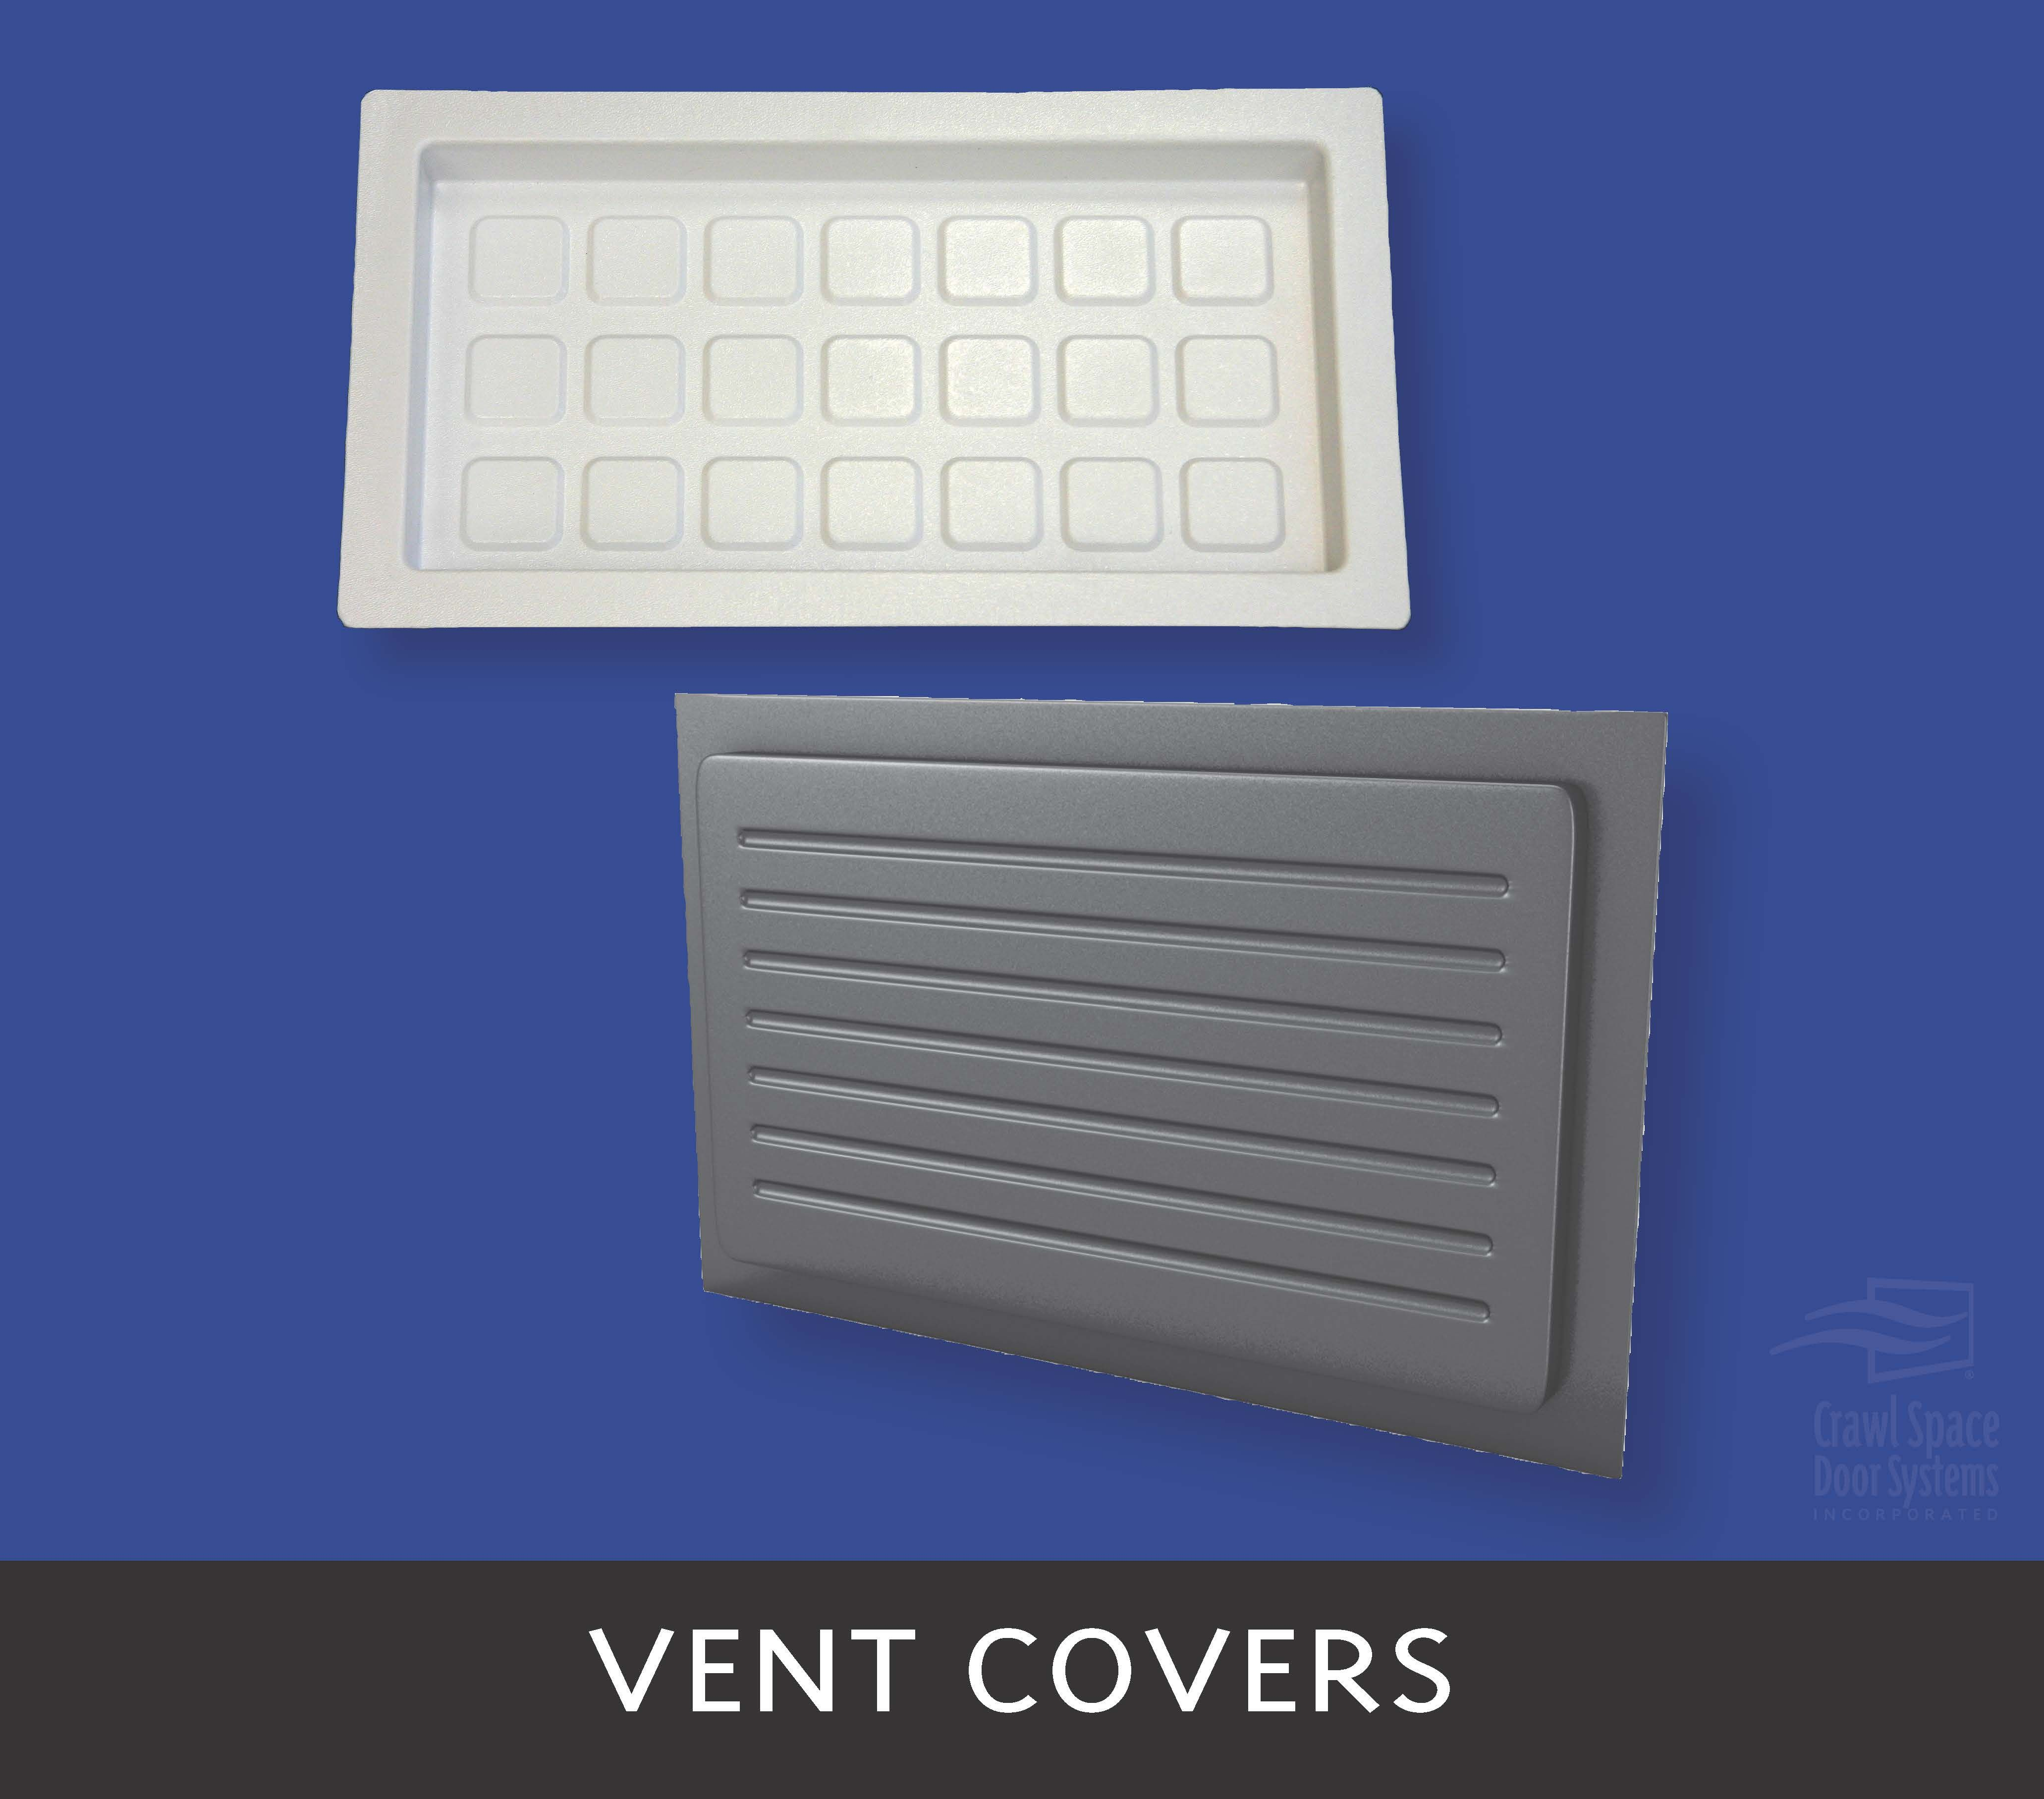 Our Vent Covers Were Designed For Sealing Off Foundation Opening